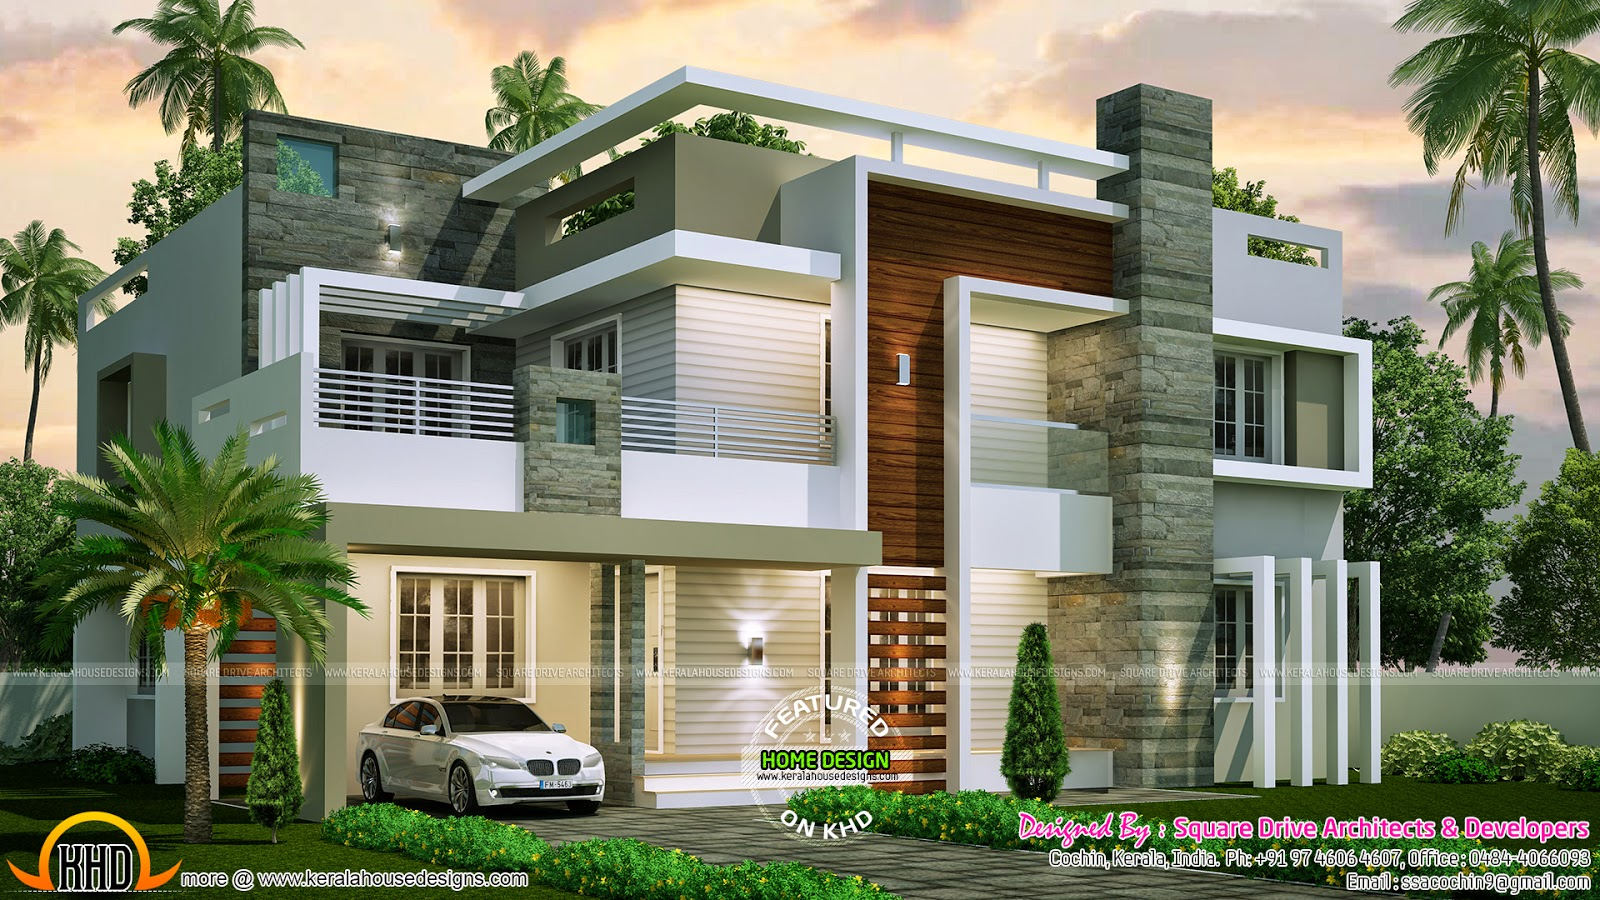 4 bedroom contemporary home design kerala home design for Modern house blueprints